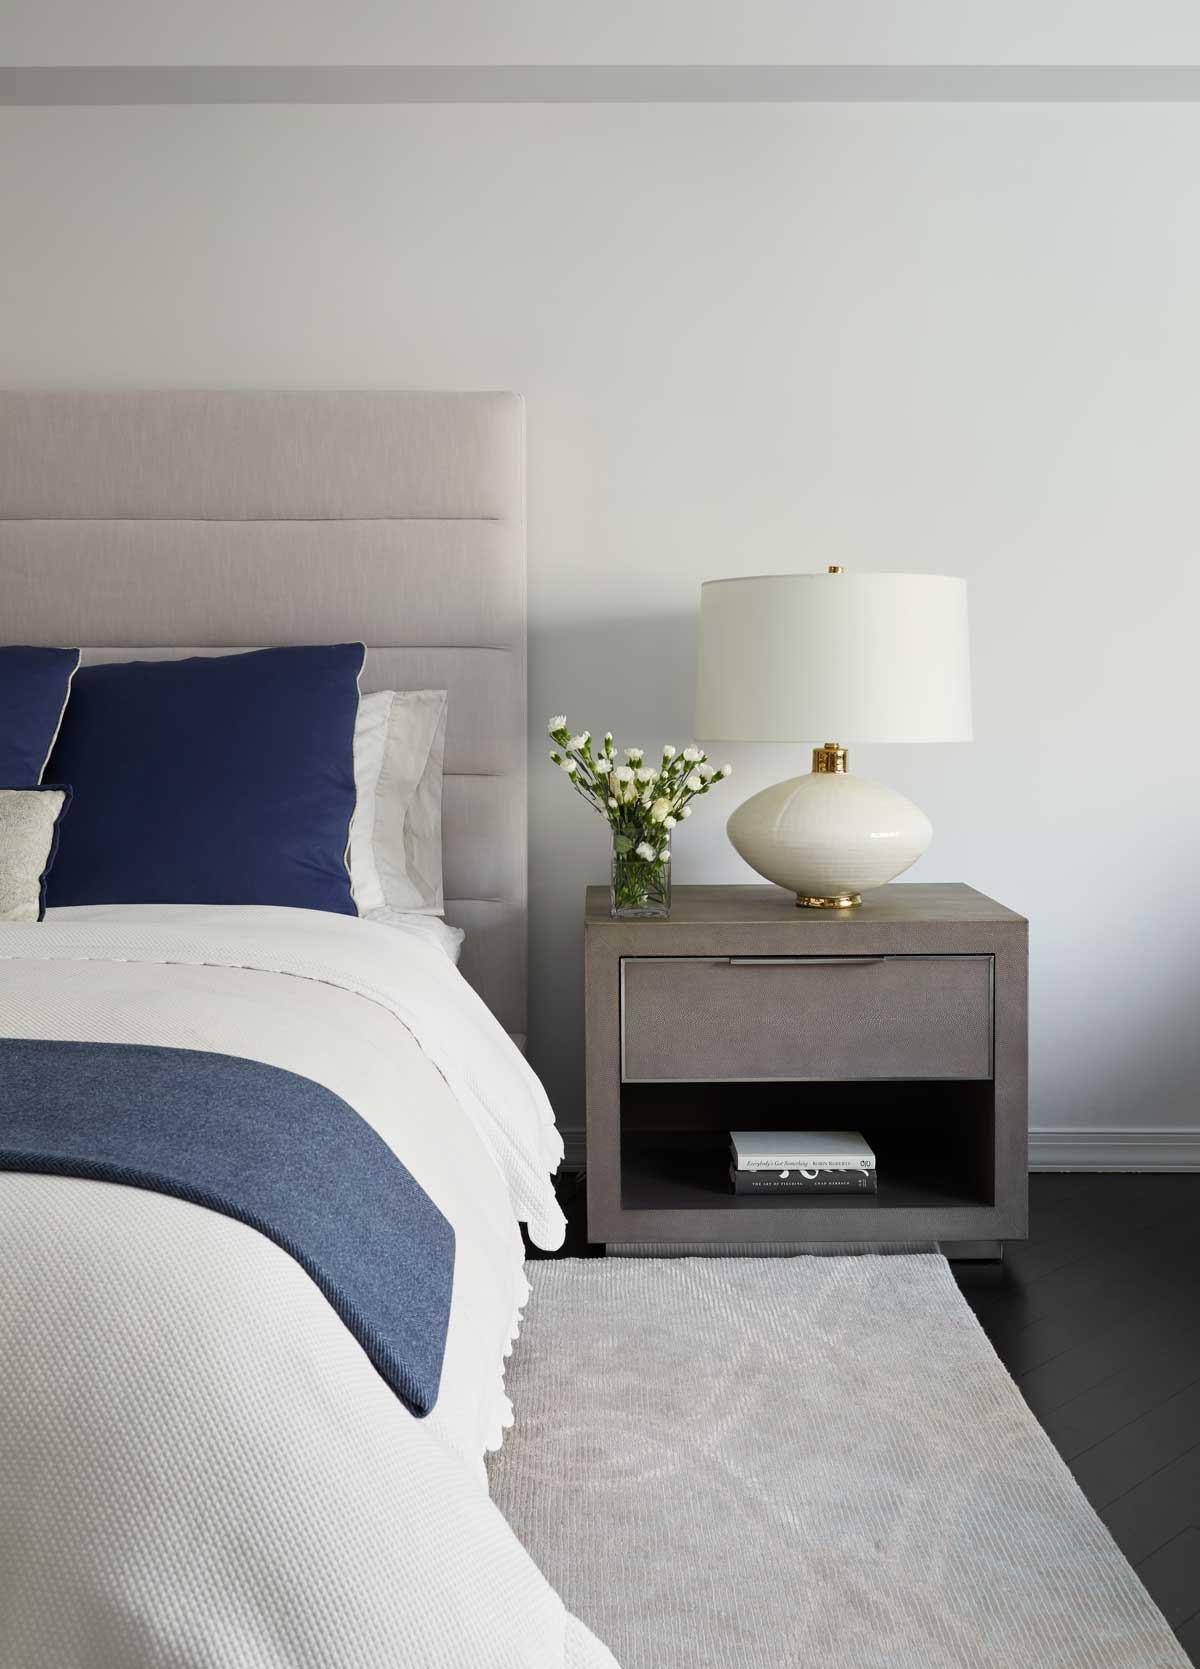 brooke moorhead design lenox hill playful bedside